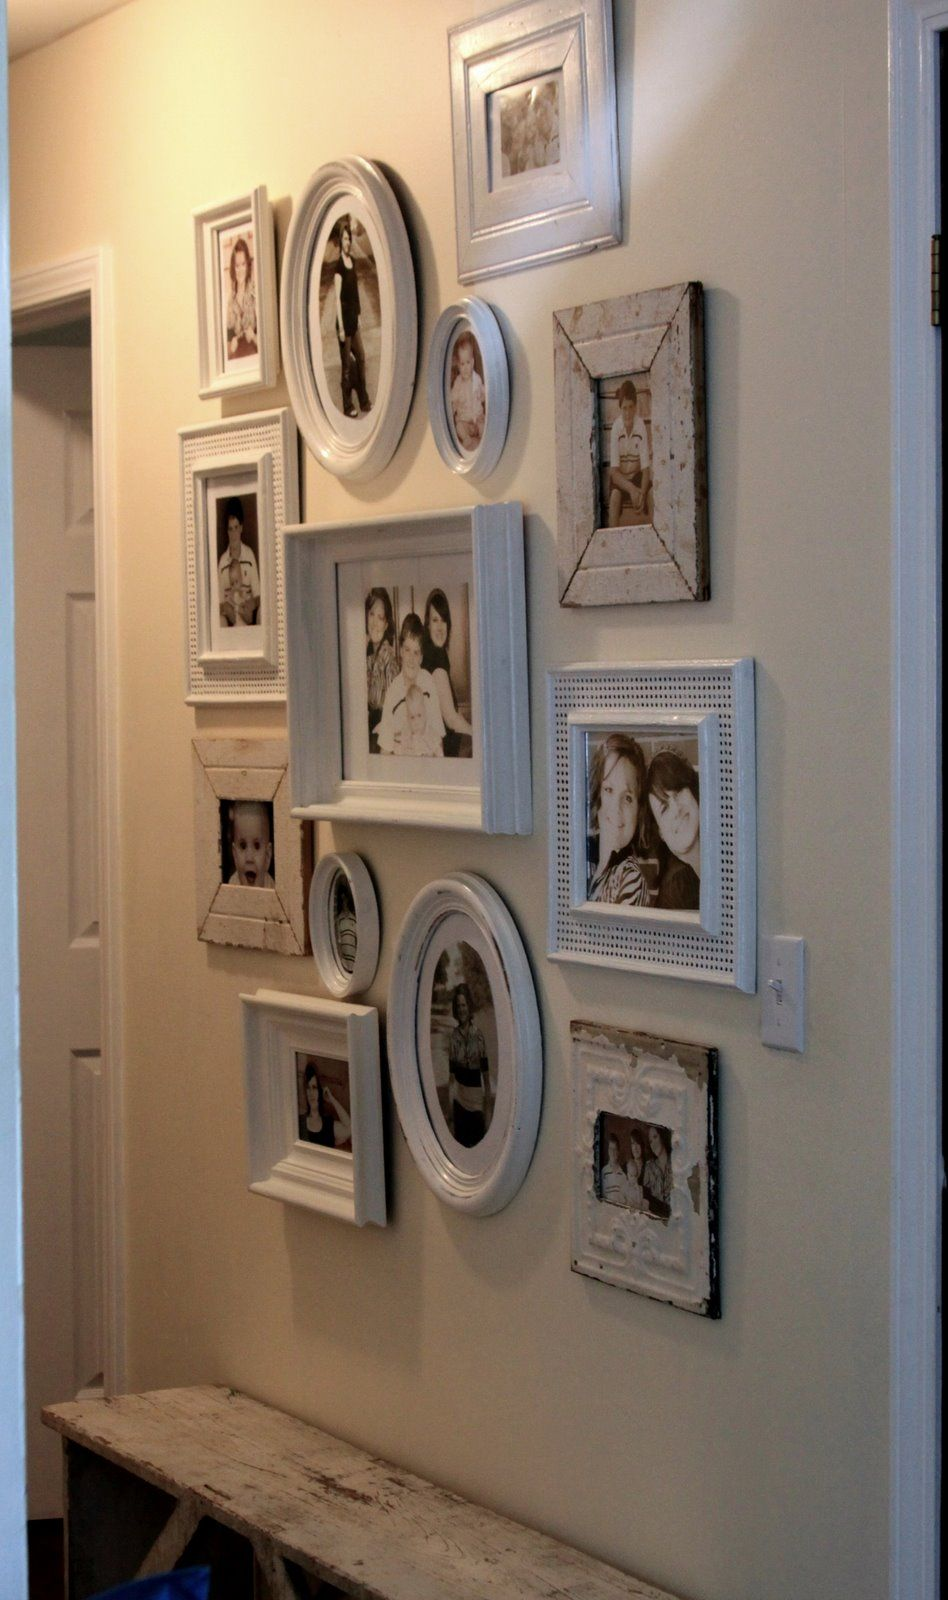 A gathering of white frames in different sizes and shapes dream a gathering of white frames in different sizes and shapes jeuxipadfo Gallery